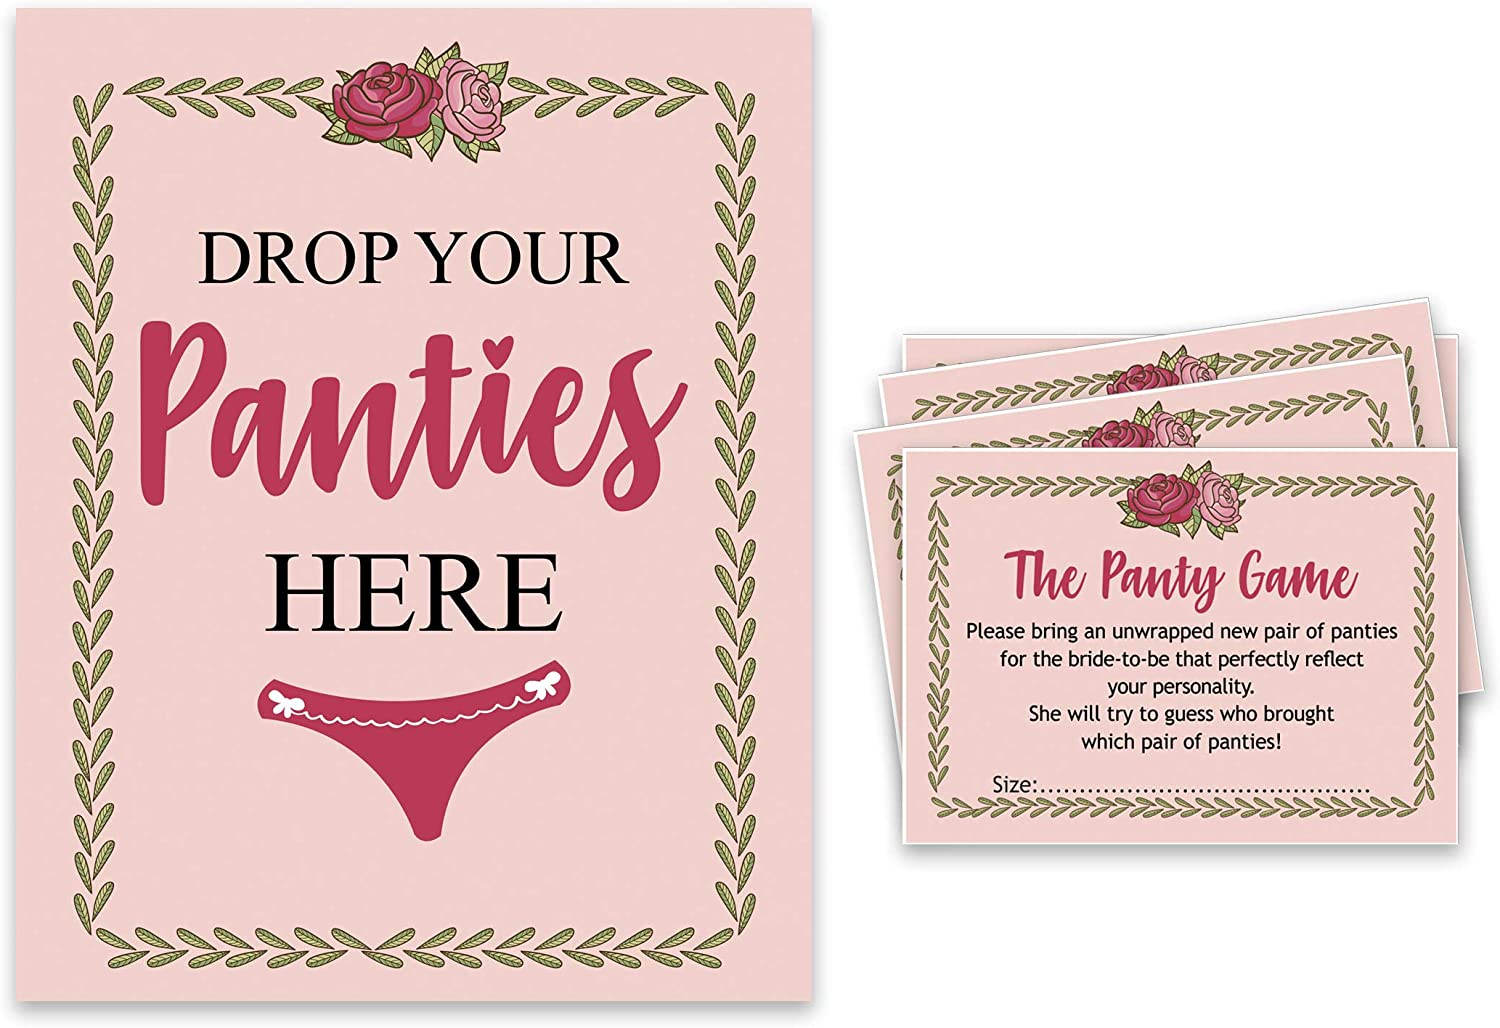 Amazon Com Inkdotpot Girls Night Out Bachelorette Party Drop Your Panties Game Floral Bridal Shower Game 1 Sign 30 Size Cards Light Peach Home Kitchen